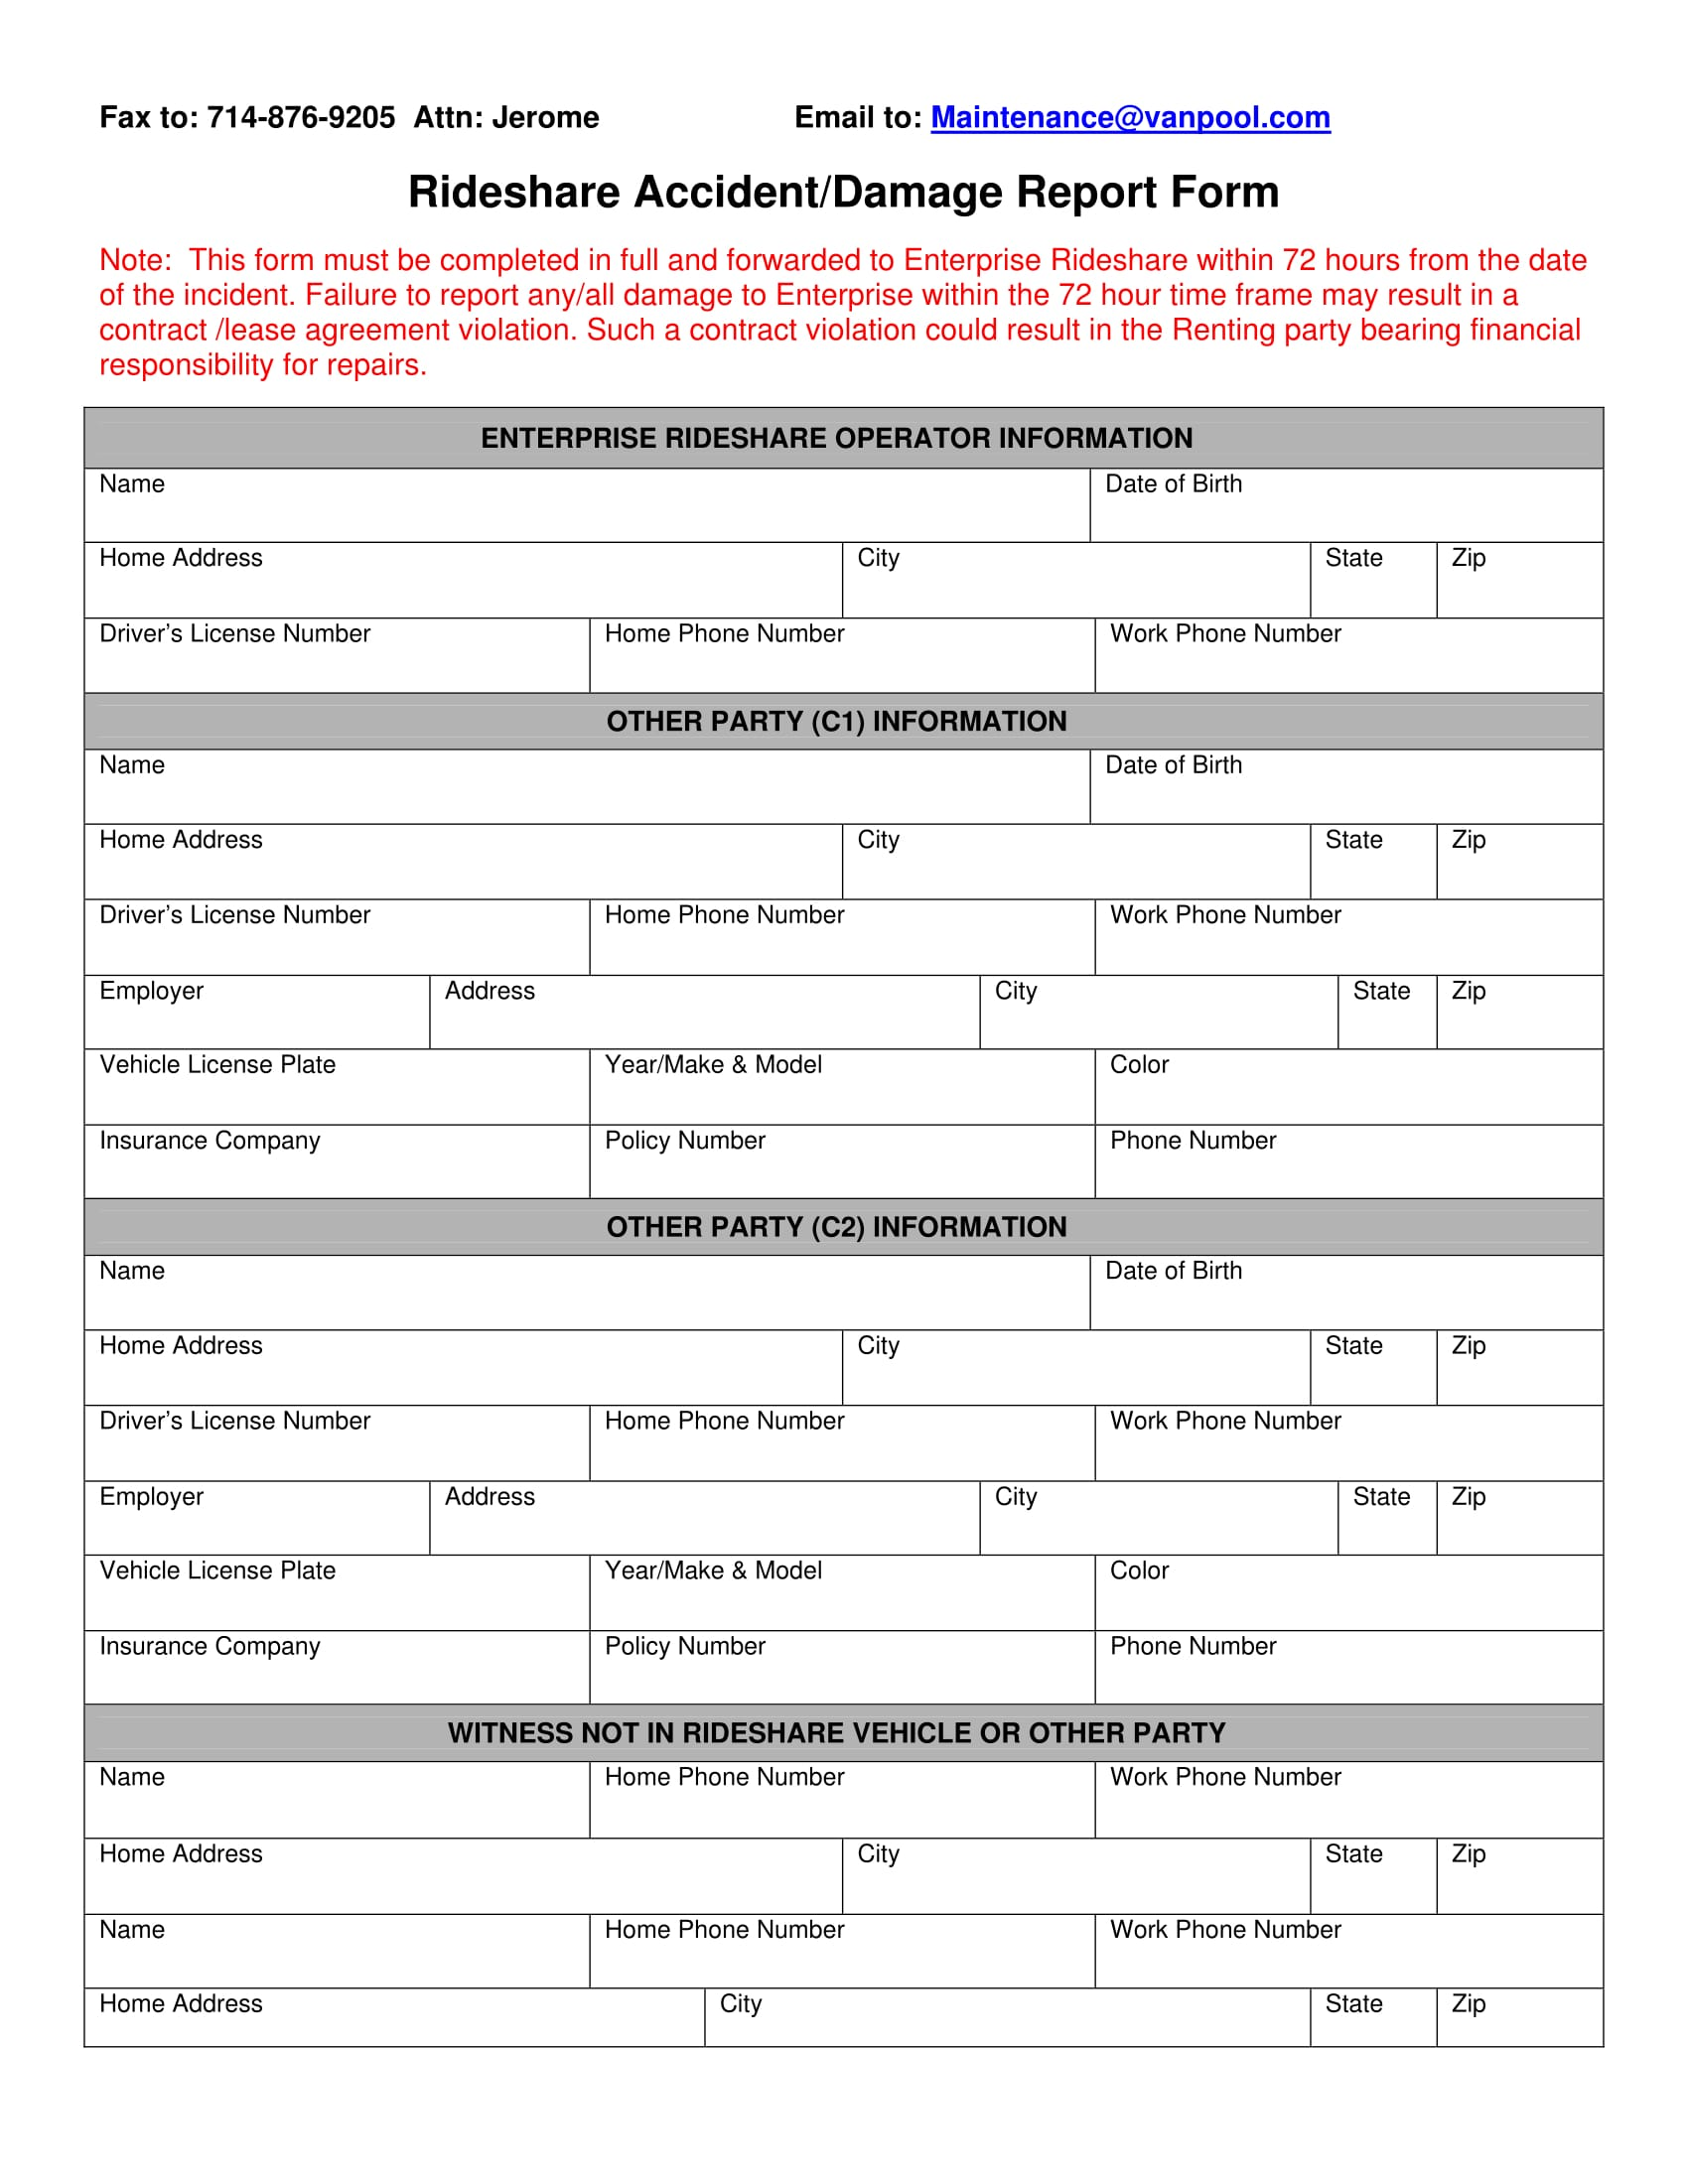 rideshare accident or damage report form 1